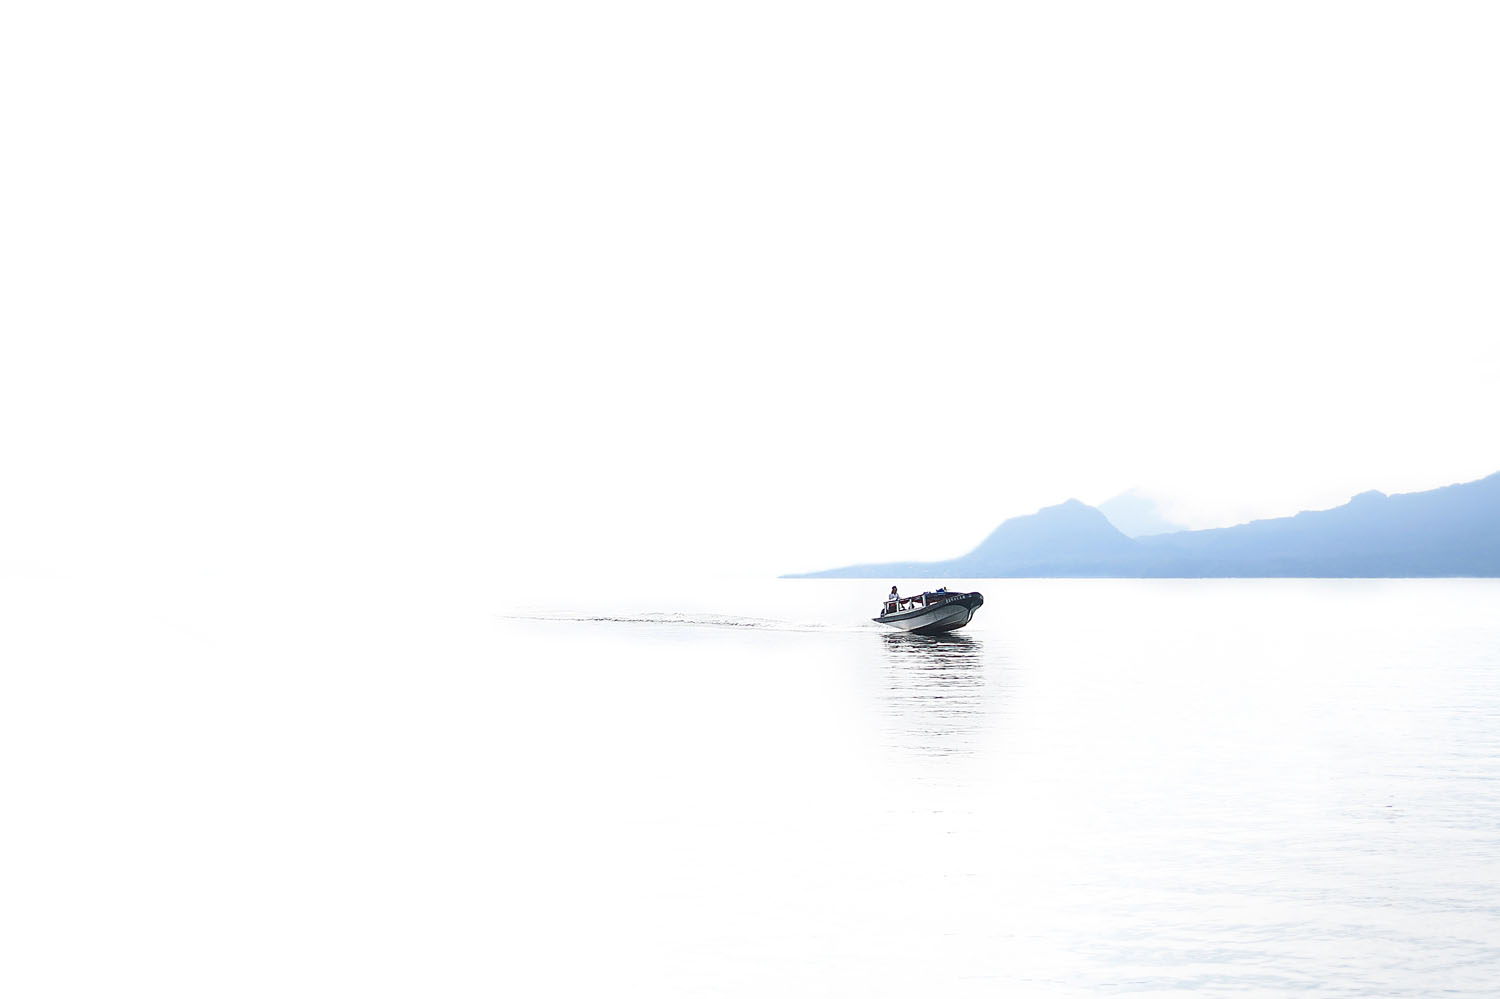 Atitlan_washed out boat_IMG_3808_V2.jpg